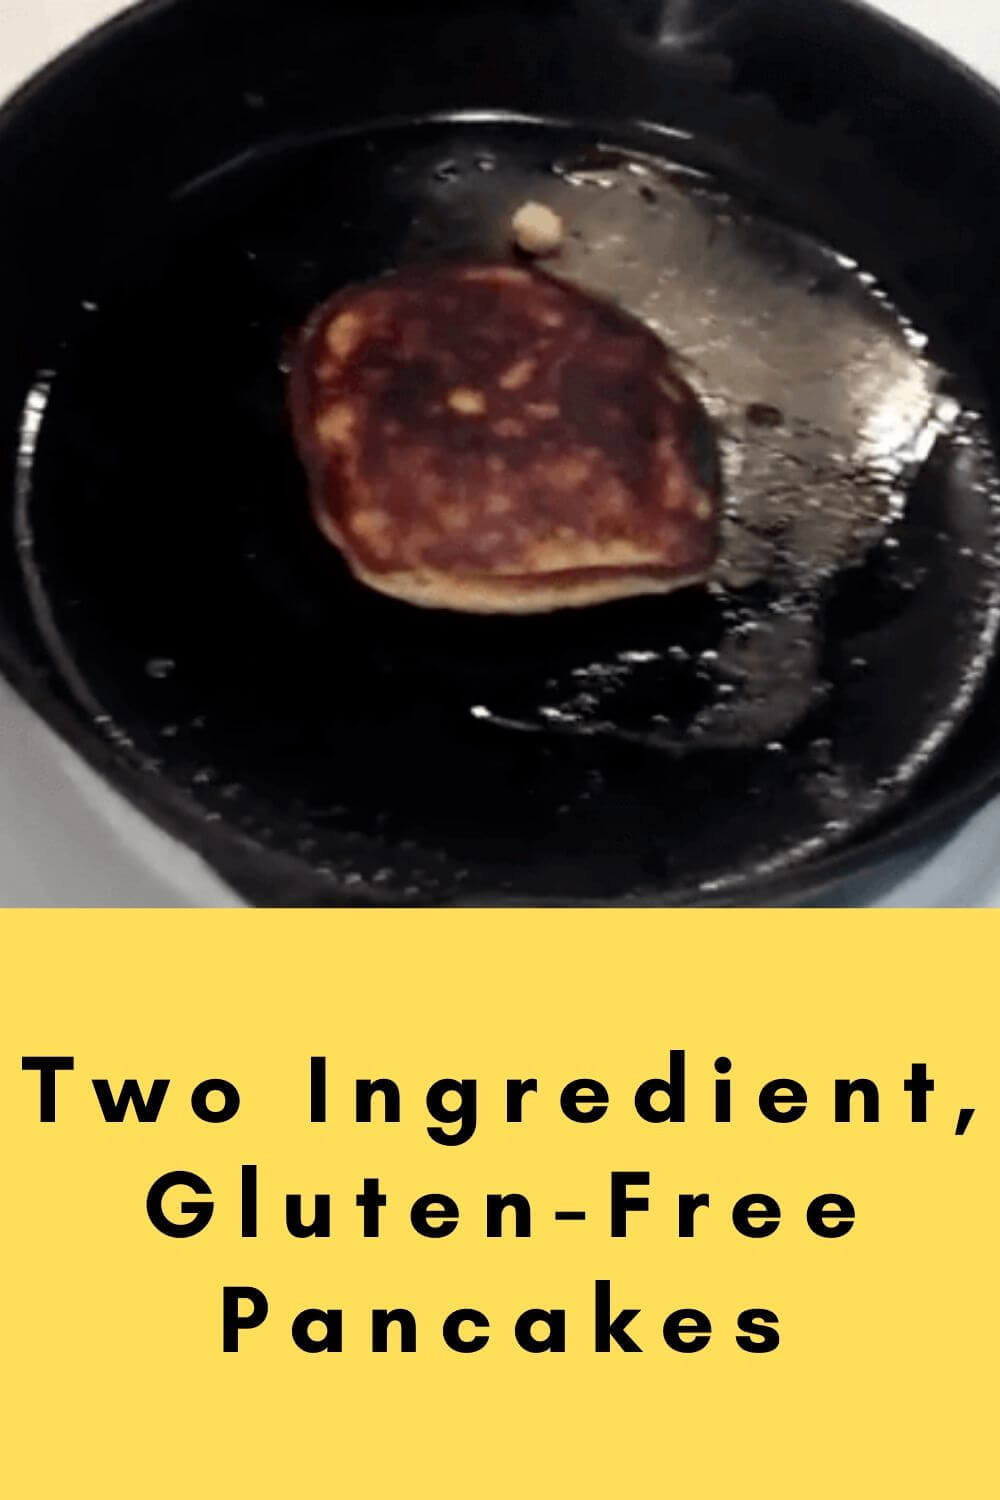 Two ingredient gluten-free pancakes